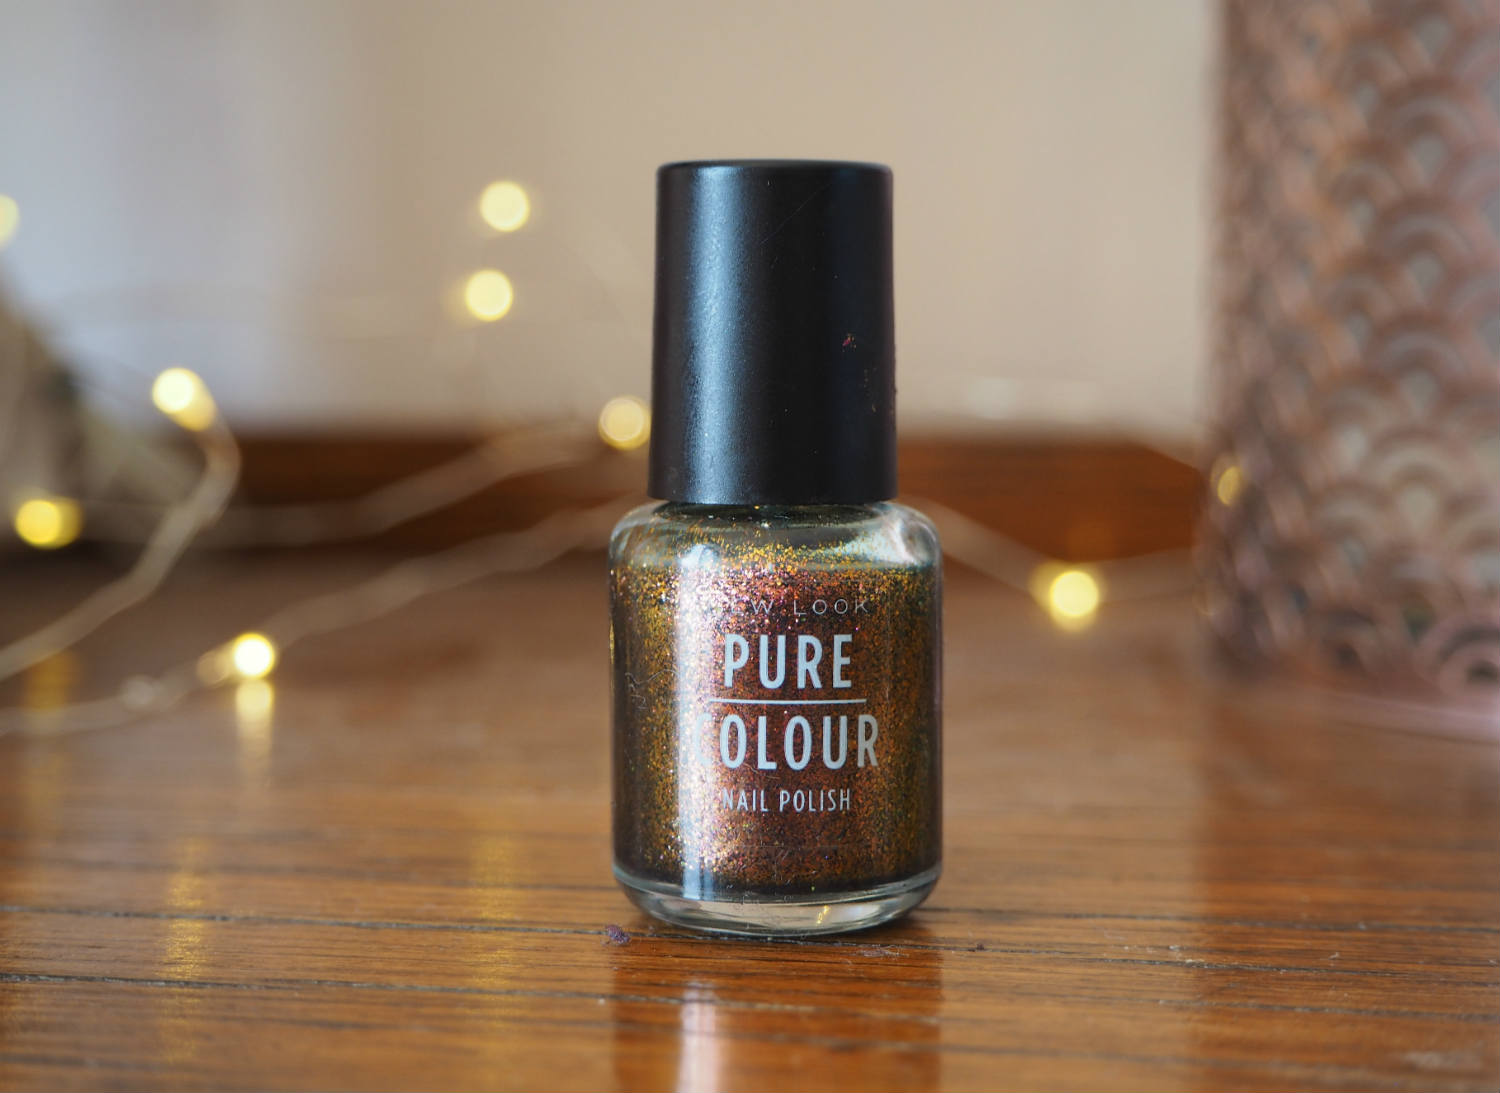 new-look-pure-colour-metallic-multi-polish-review-swatch